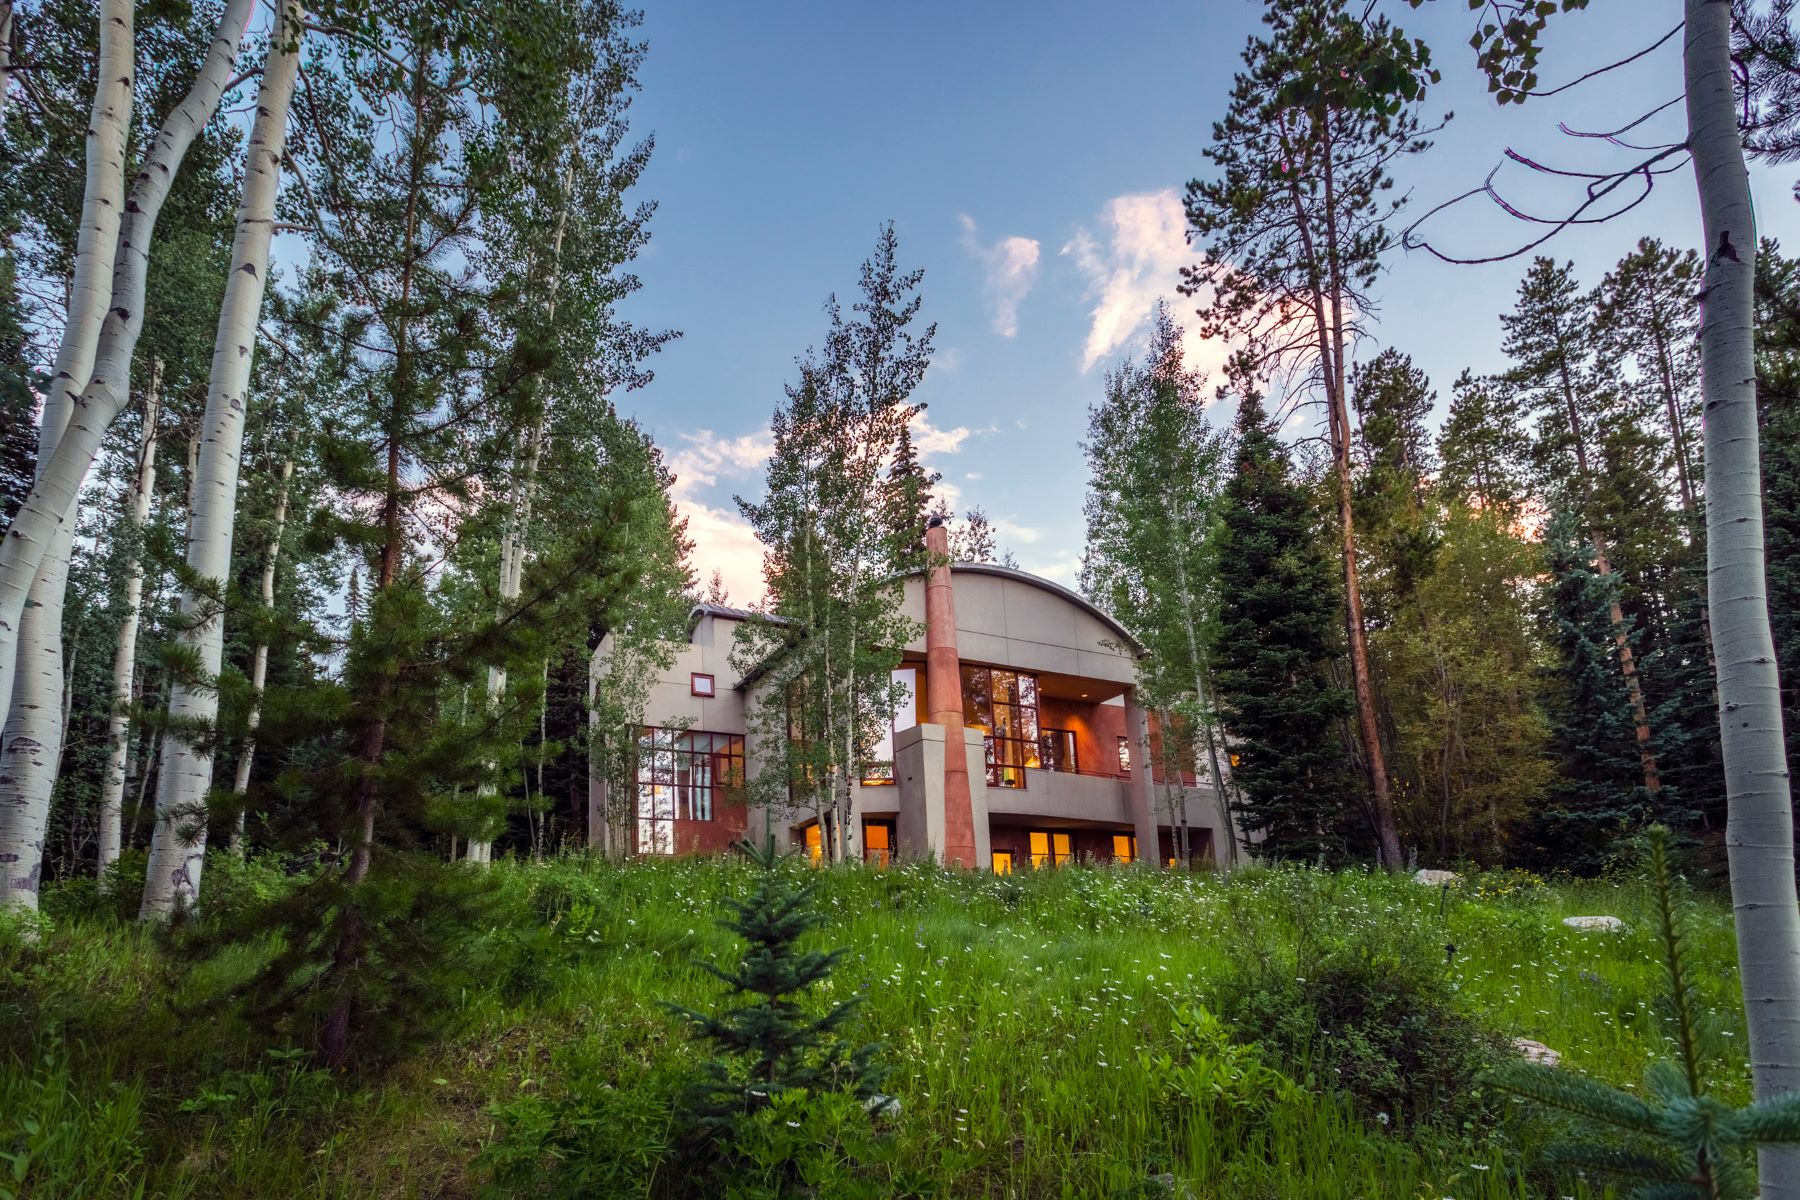 Single Family Home for Sale at Mountain Contemporary Home 84 Pine Lane Snowmass Village, Colorado, 81615 United States